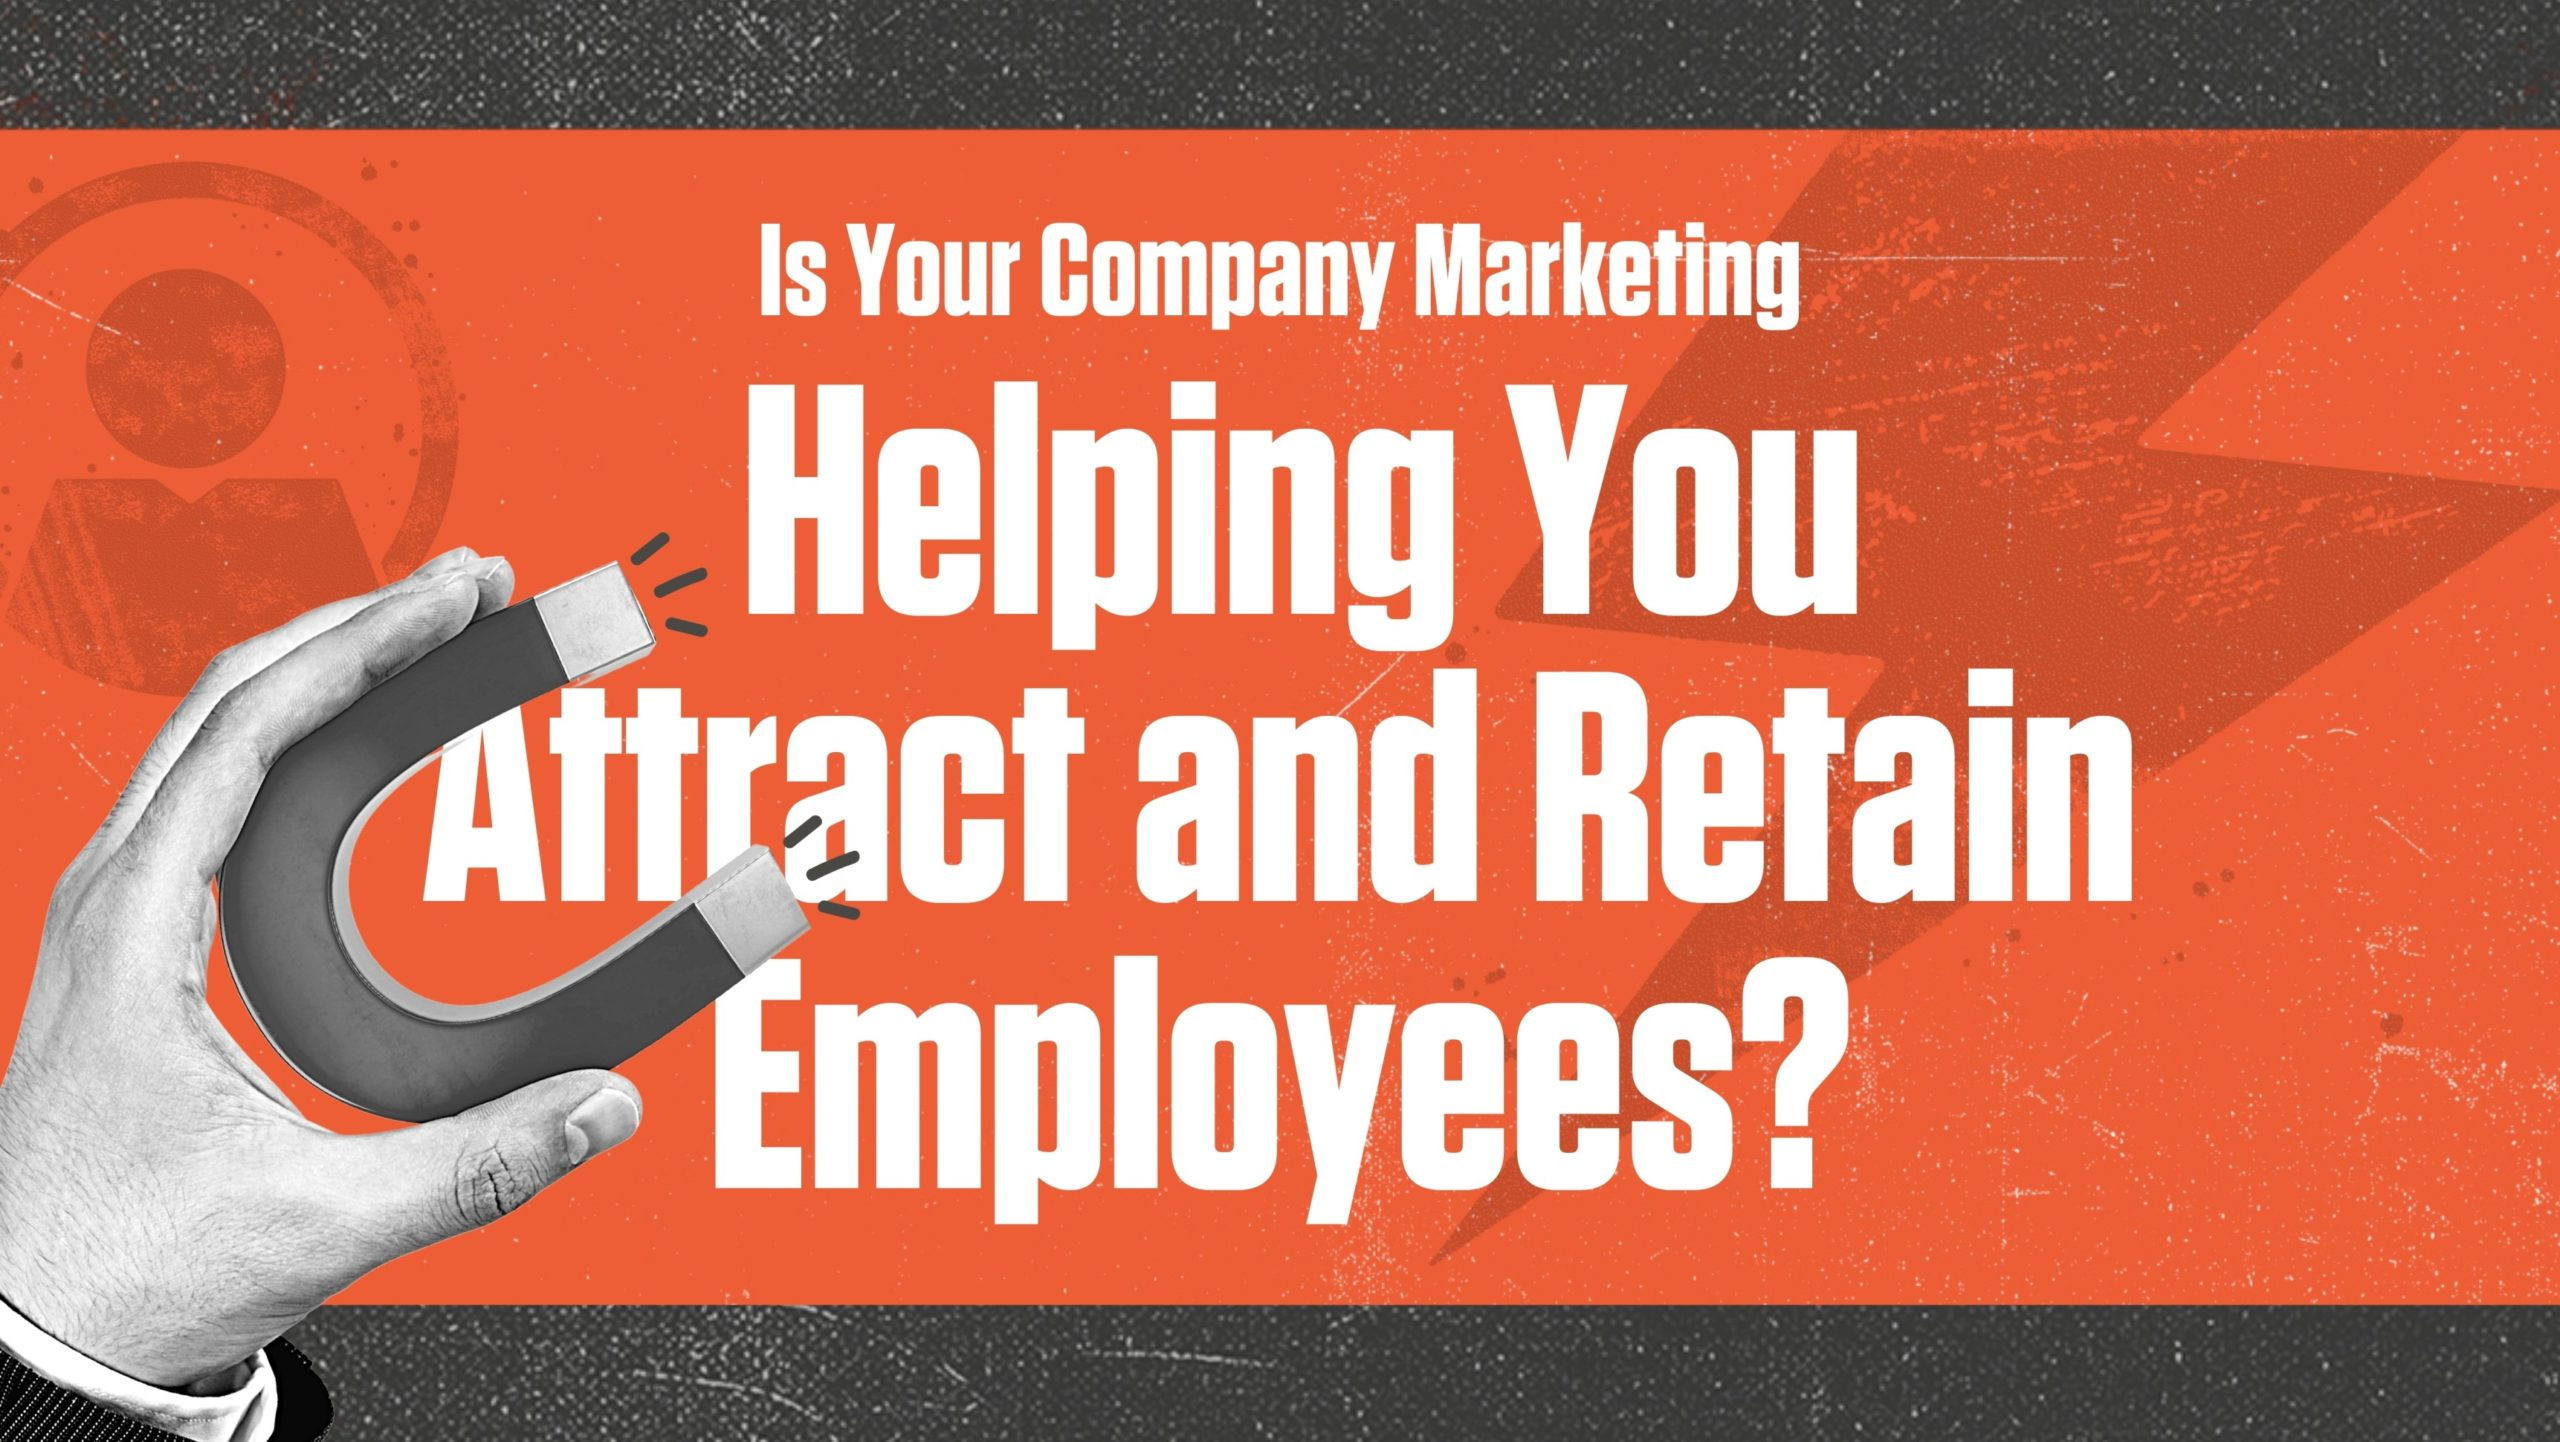 Is Your Marketing Helping You Attract and Retain Employees